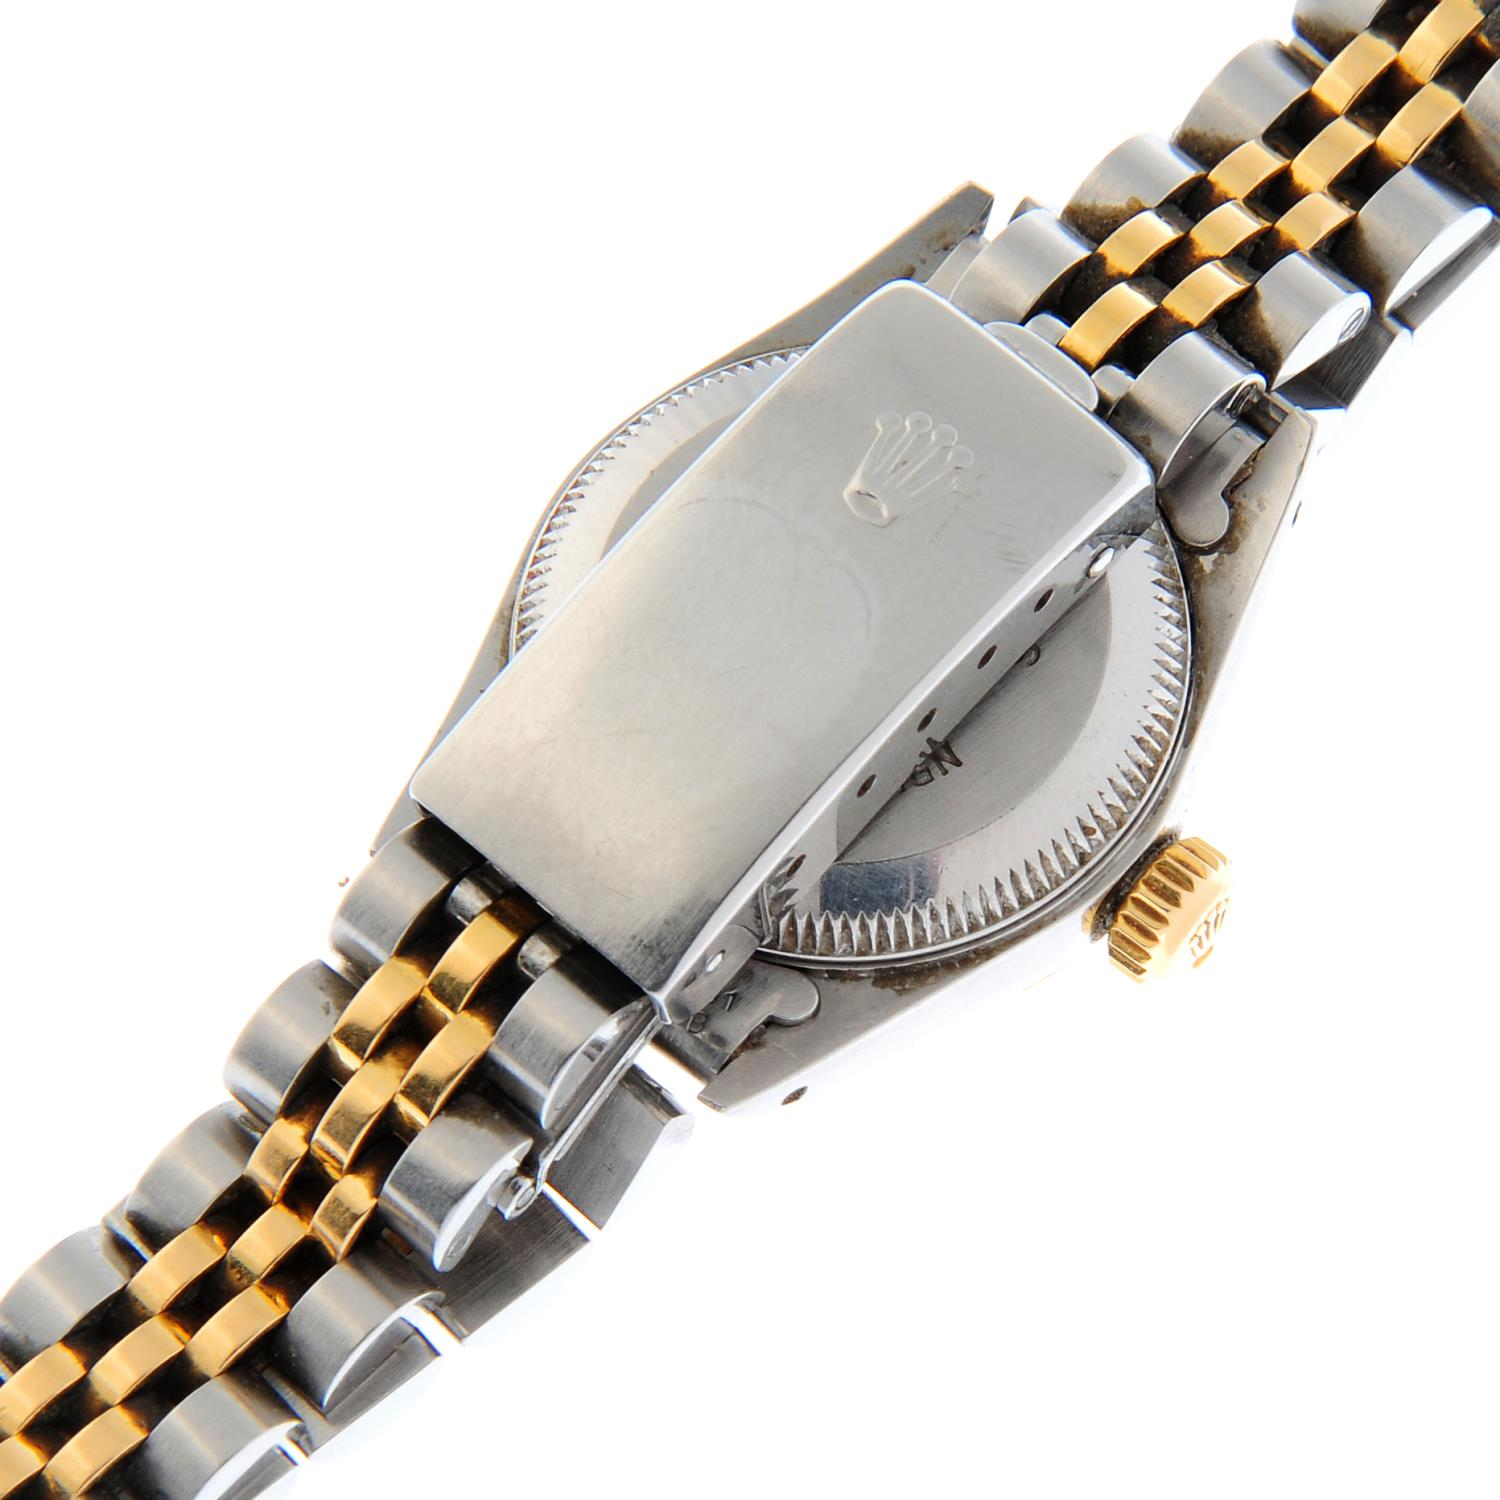 ROLEX - an Oyster Perpetual bracelet watch. - Image 2 of 4